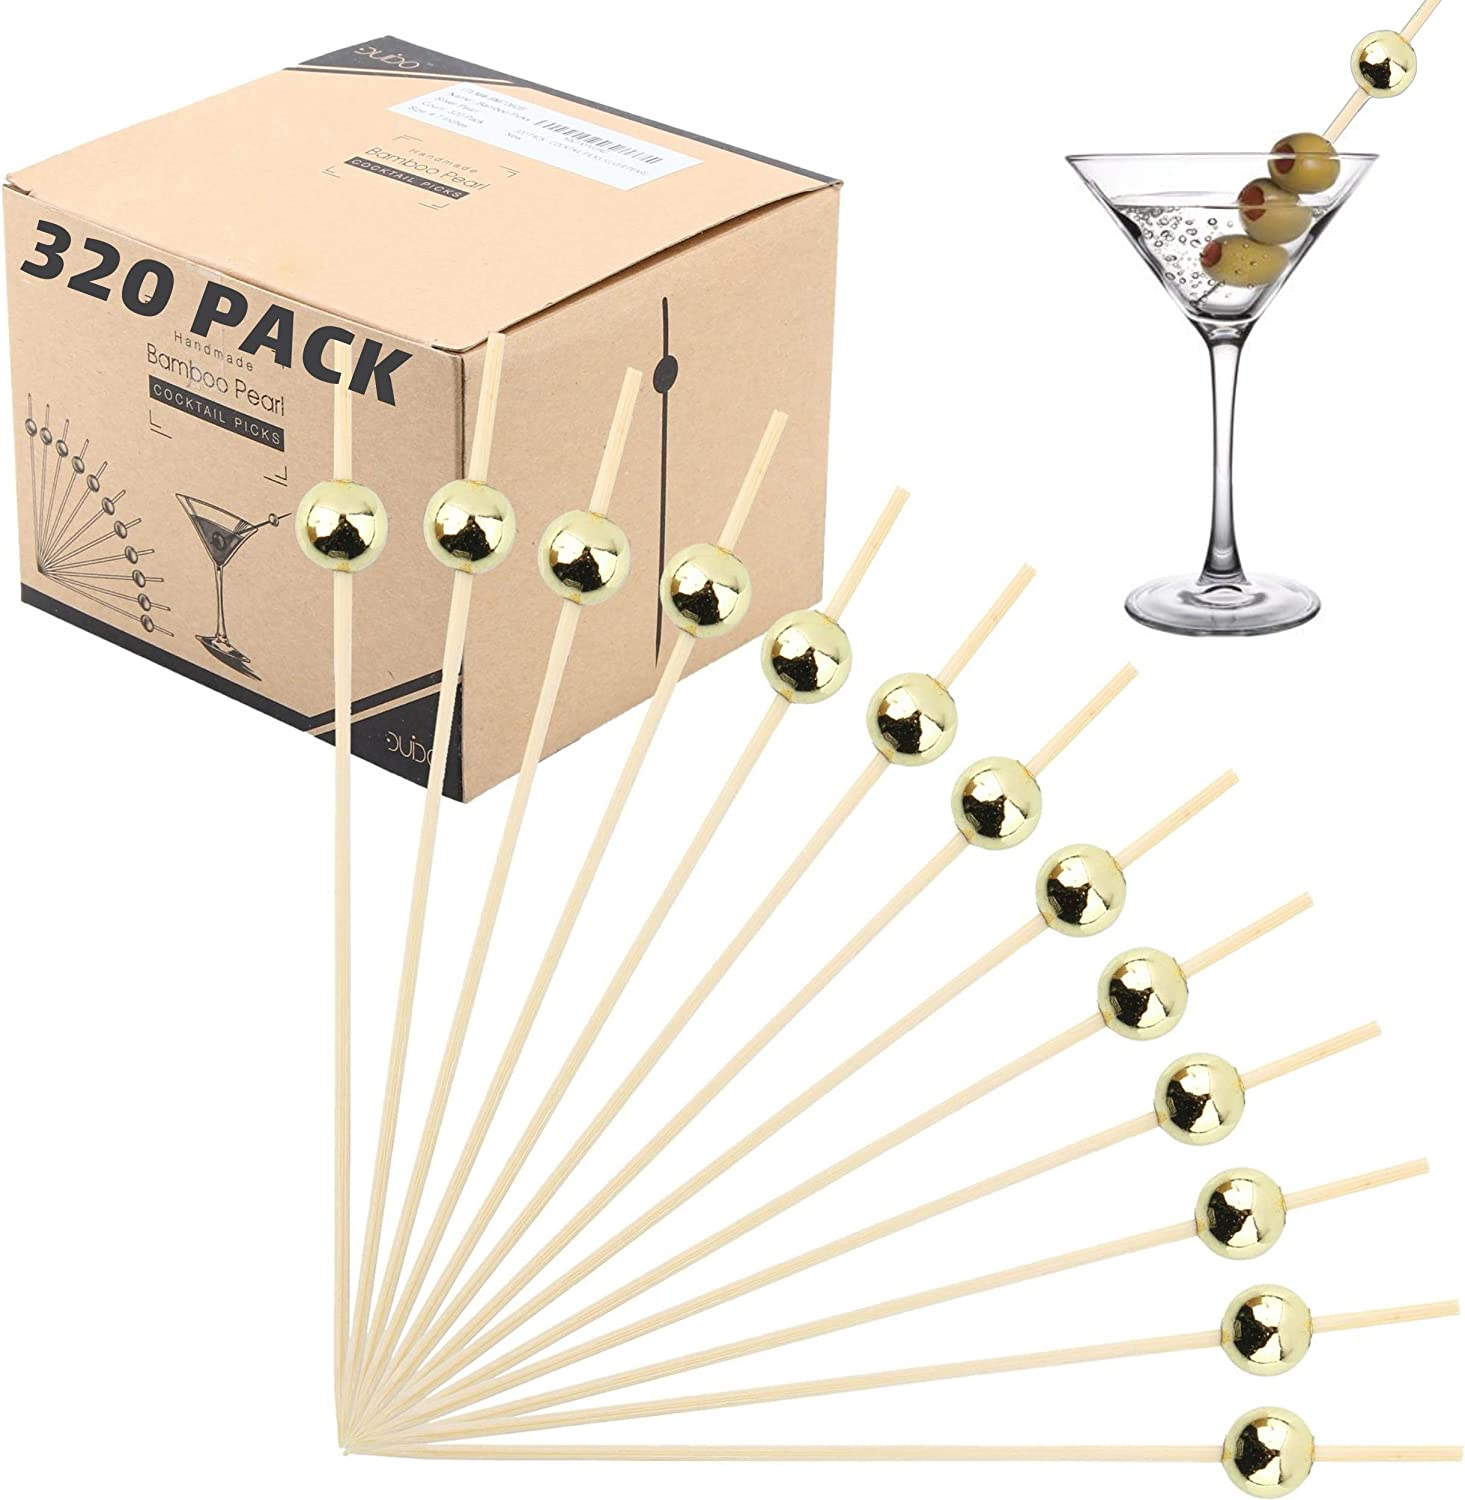 Bamboo Cocktail Picks Skewers Toothpicks - (Pack of 320) 4.75 Inch Gold Pearl Wooden Frill Tooth Picks for Appetizer Martini Food Garnish Cocktail Sandwich Fruit Kabobs – Catering Weddings Decorative